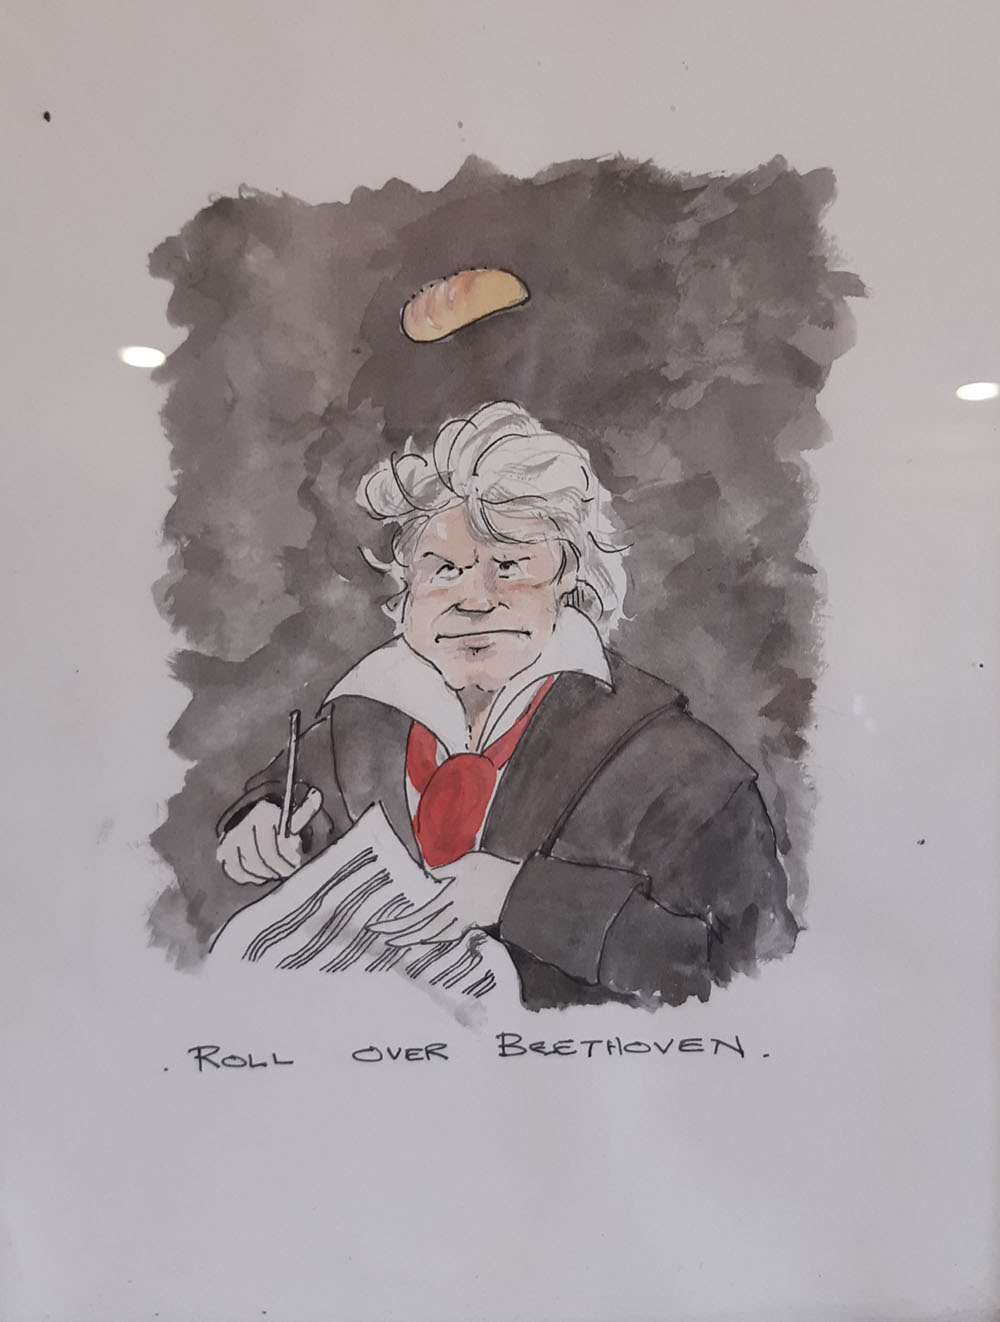 Roll Over Beethoven by Alec Dickson